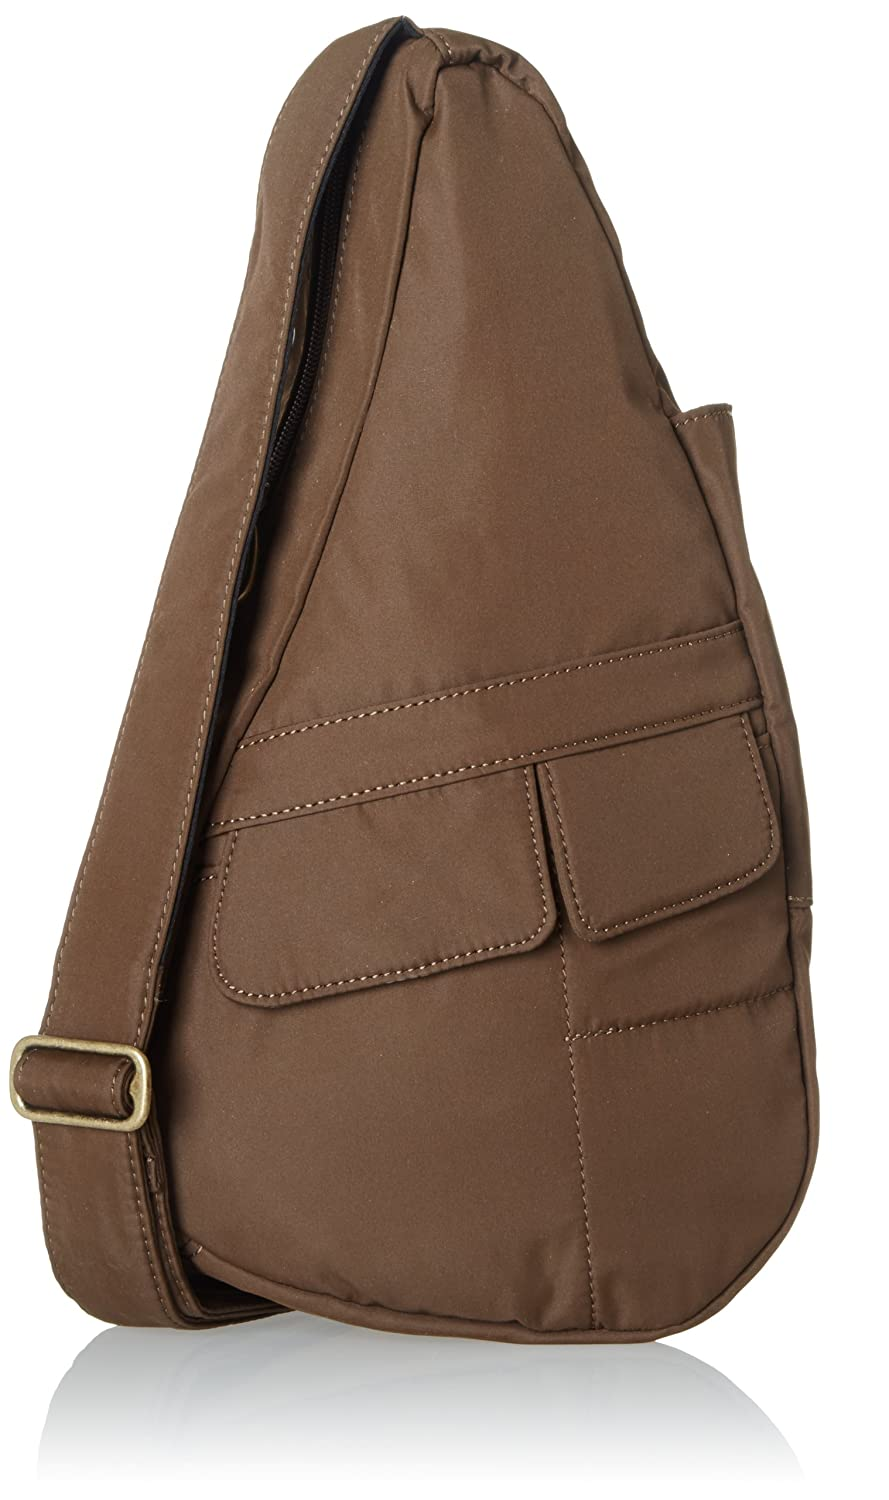 AmeriBag X-Small Microfiber Healthy Back Bag Tote Taupe one Size 7102-TP